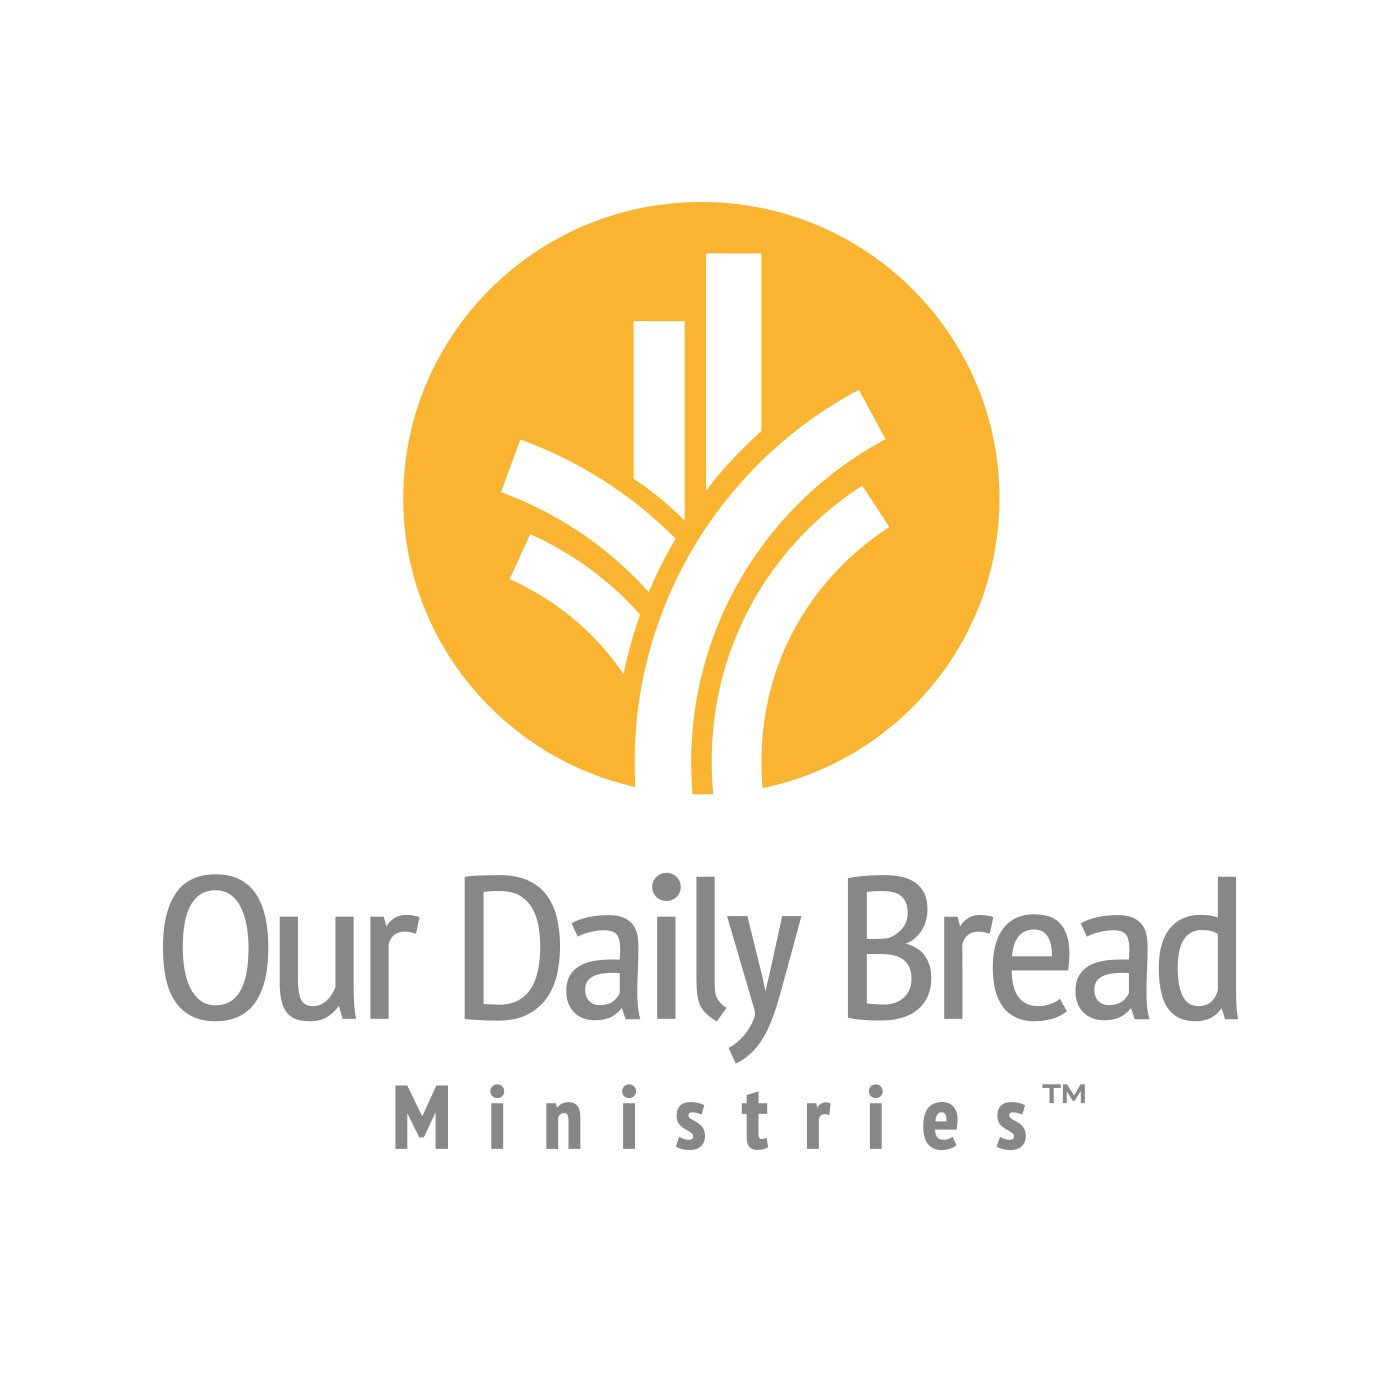 Our Daily Bread Friday 15th January 2021, Our Daily Bread Friday 15th January 2021 Devotional – All Roads?, Latest Nigeria News, Daily Devotionals & Celebrity Gossips - Chidispalace